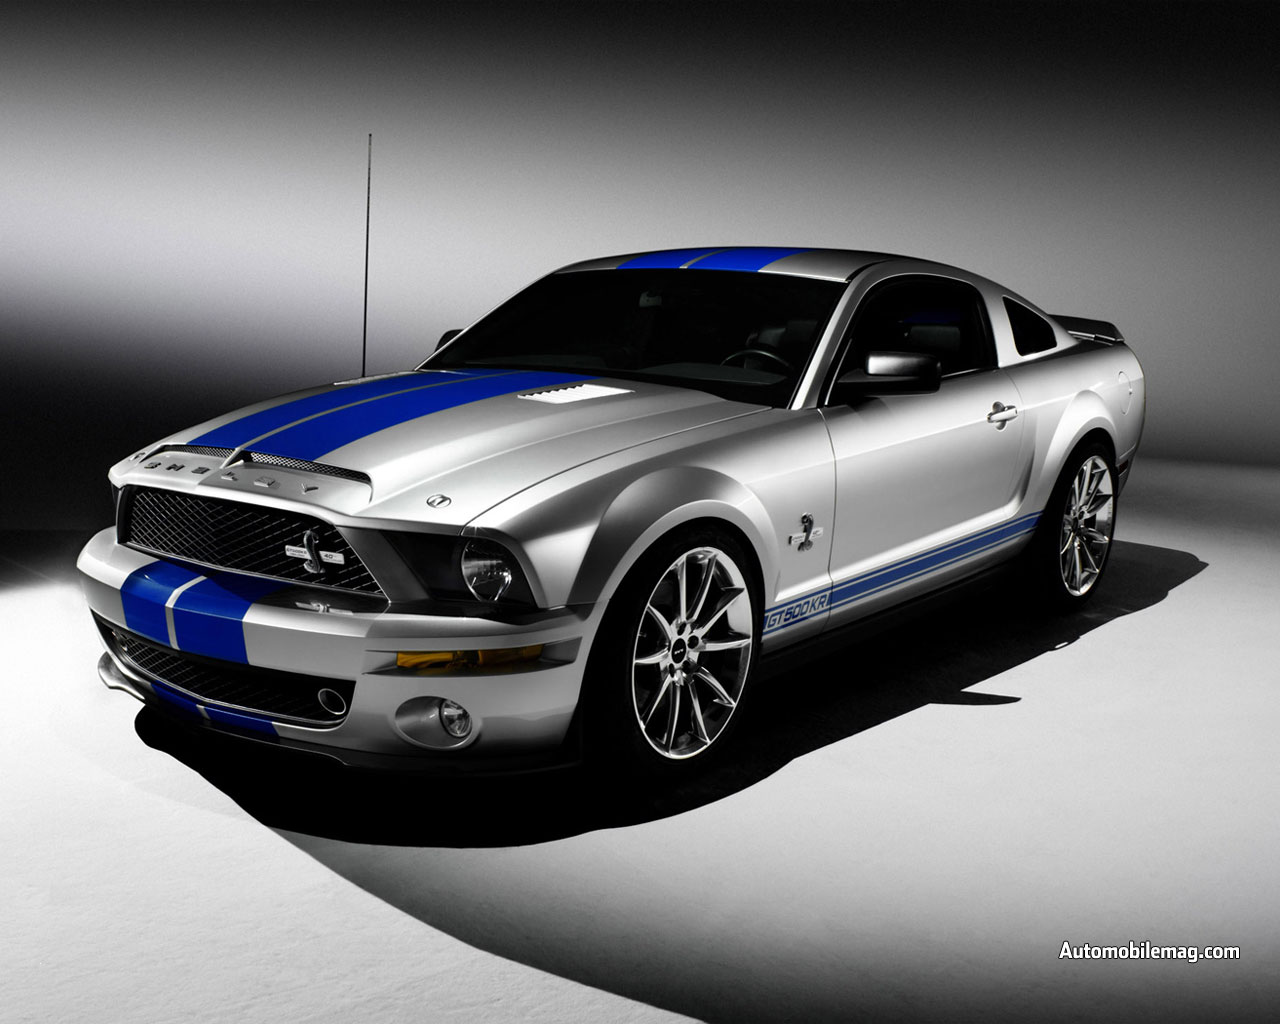 The brand new Ford/ Shelby